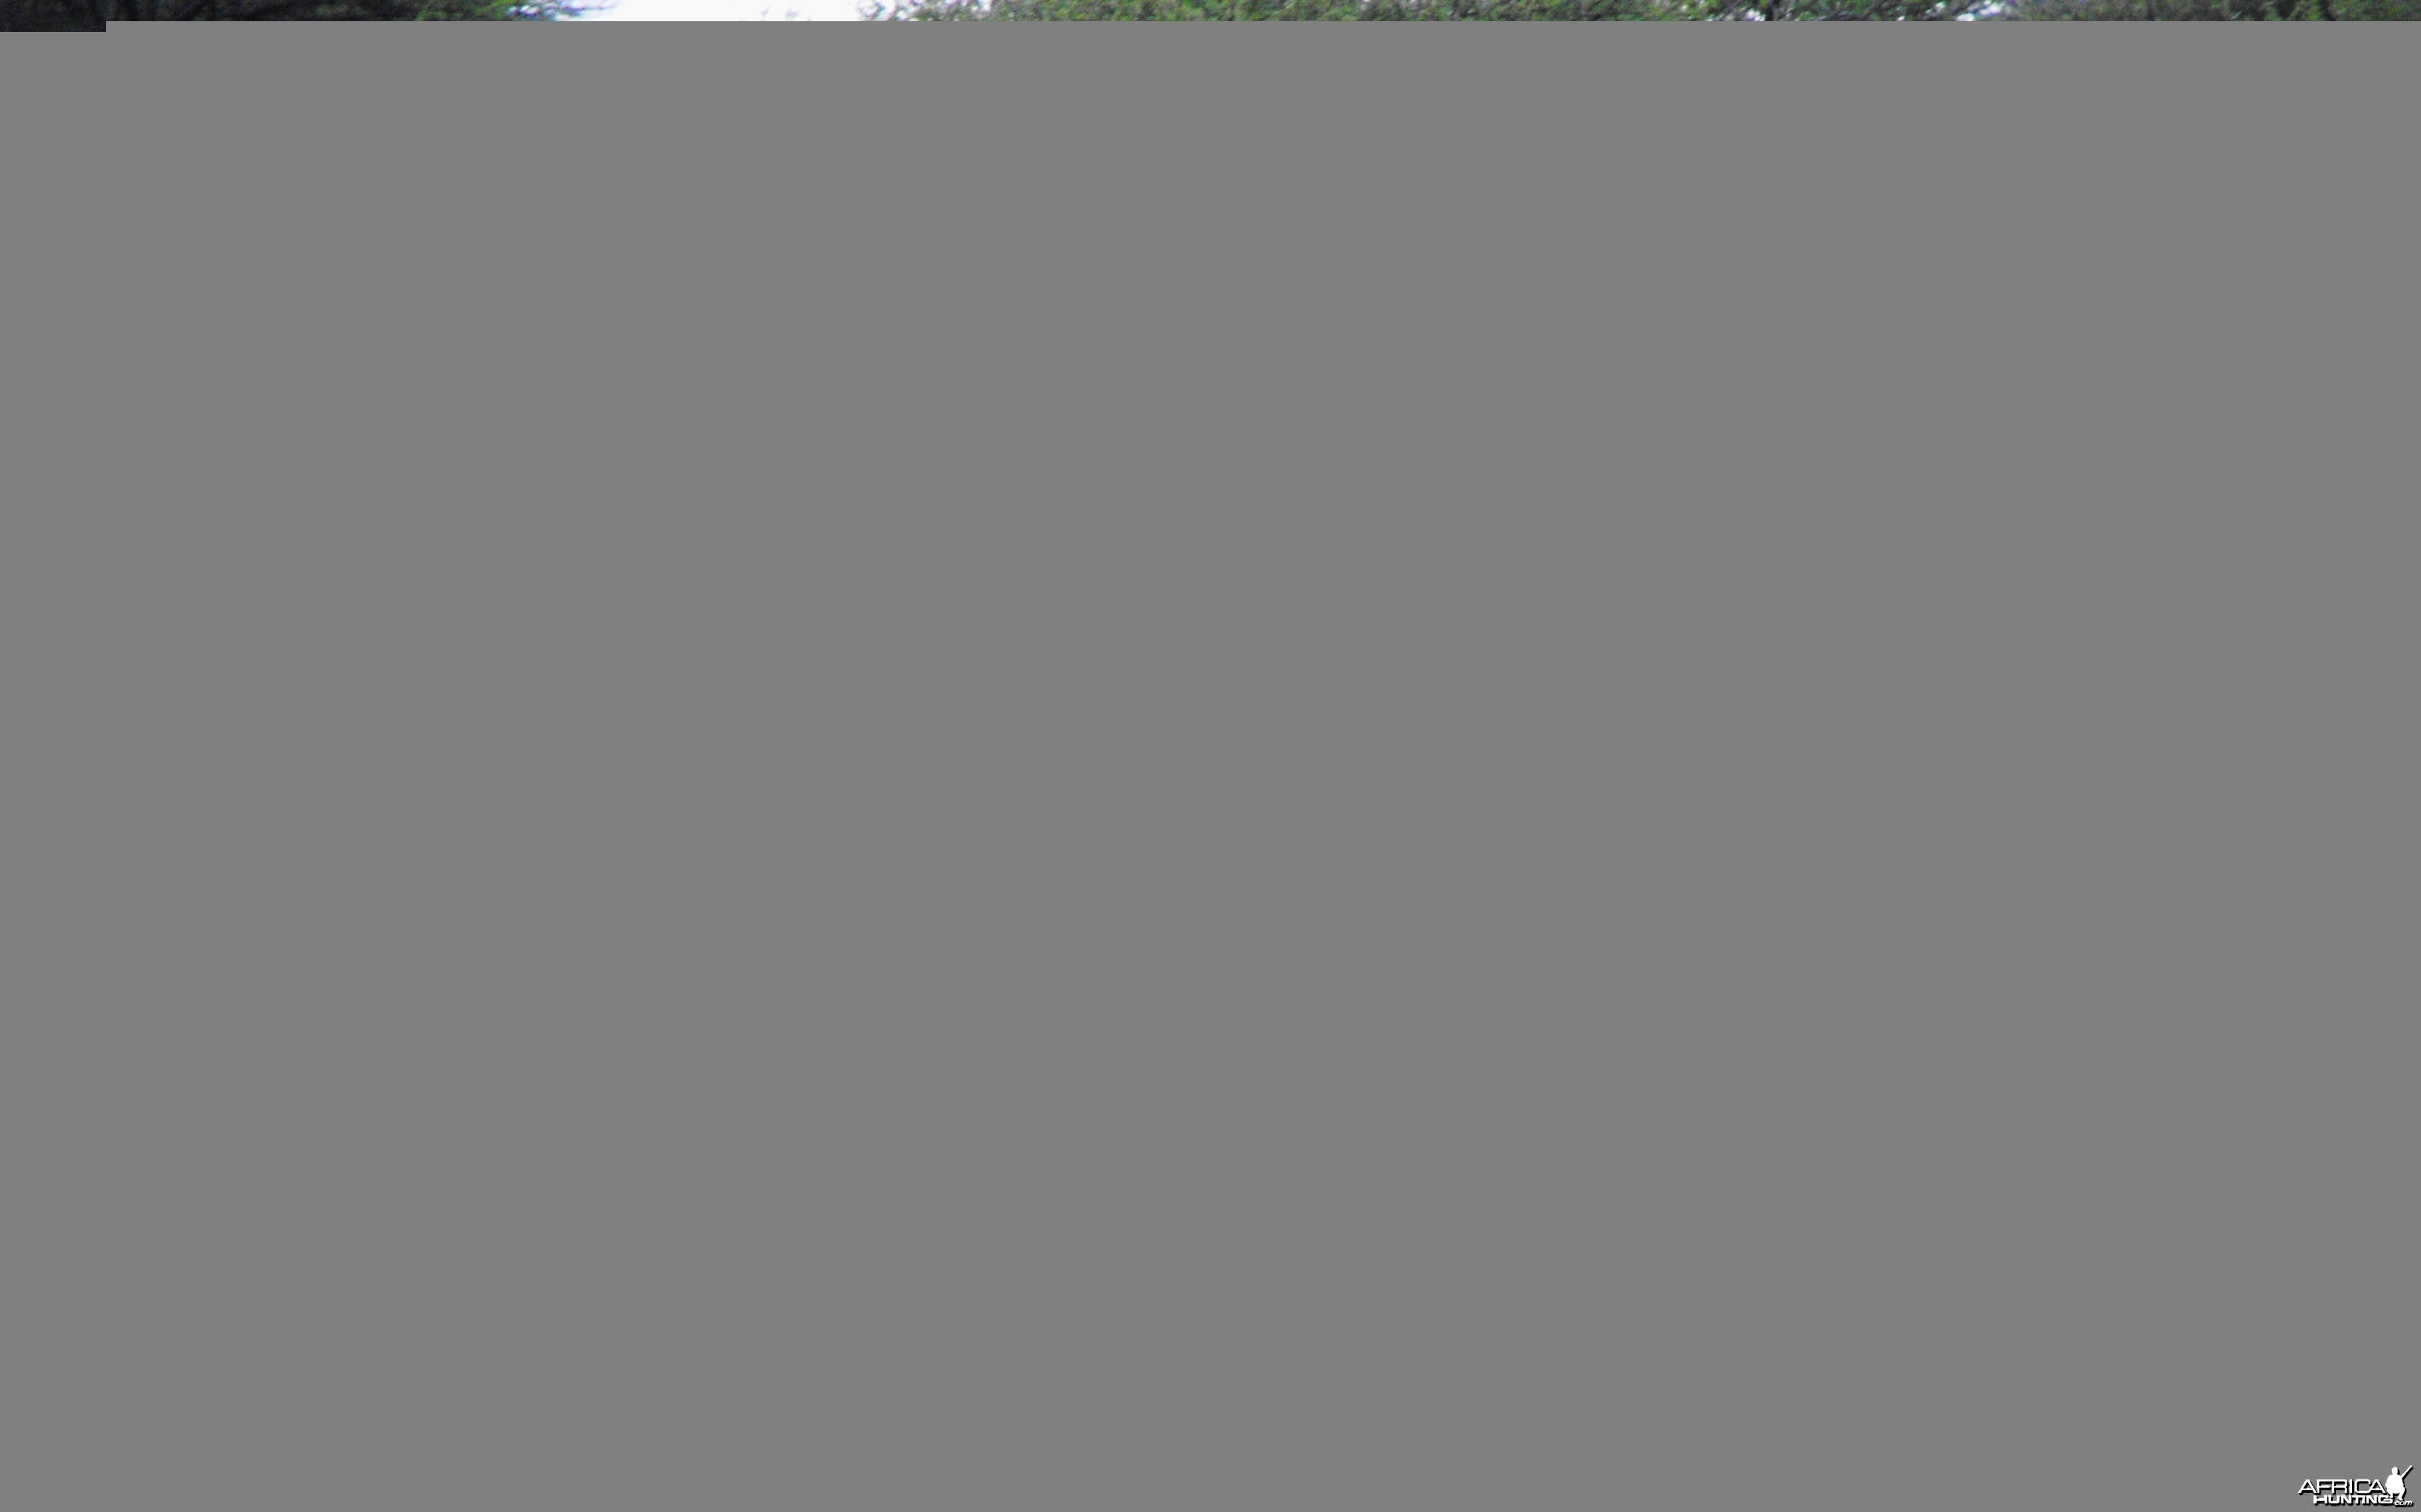 Can you spot the Steenbuck ram?